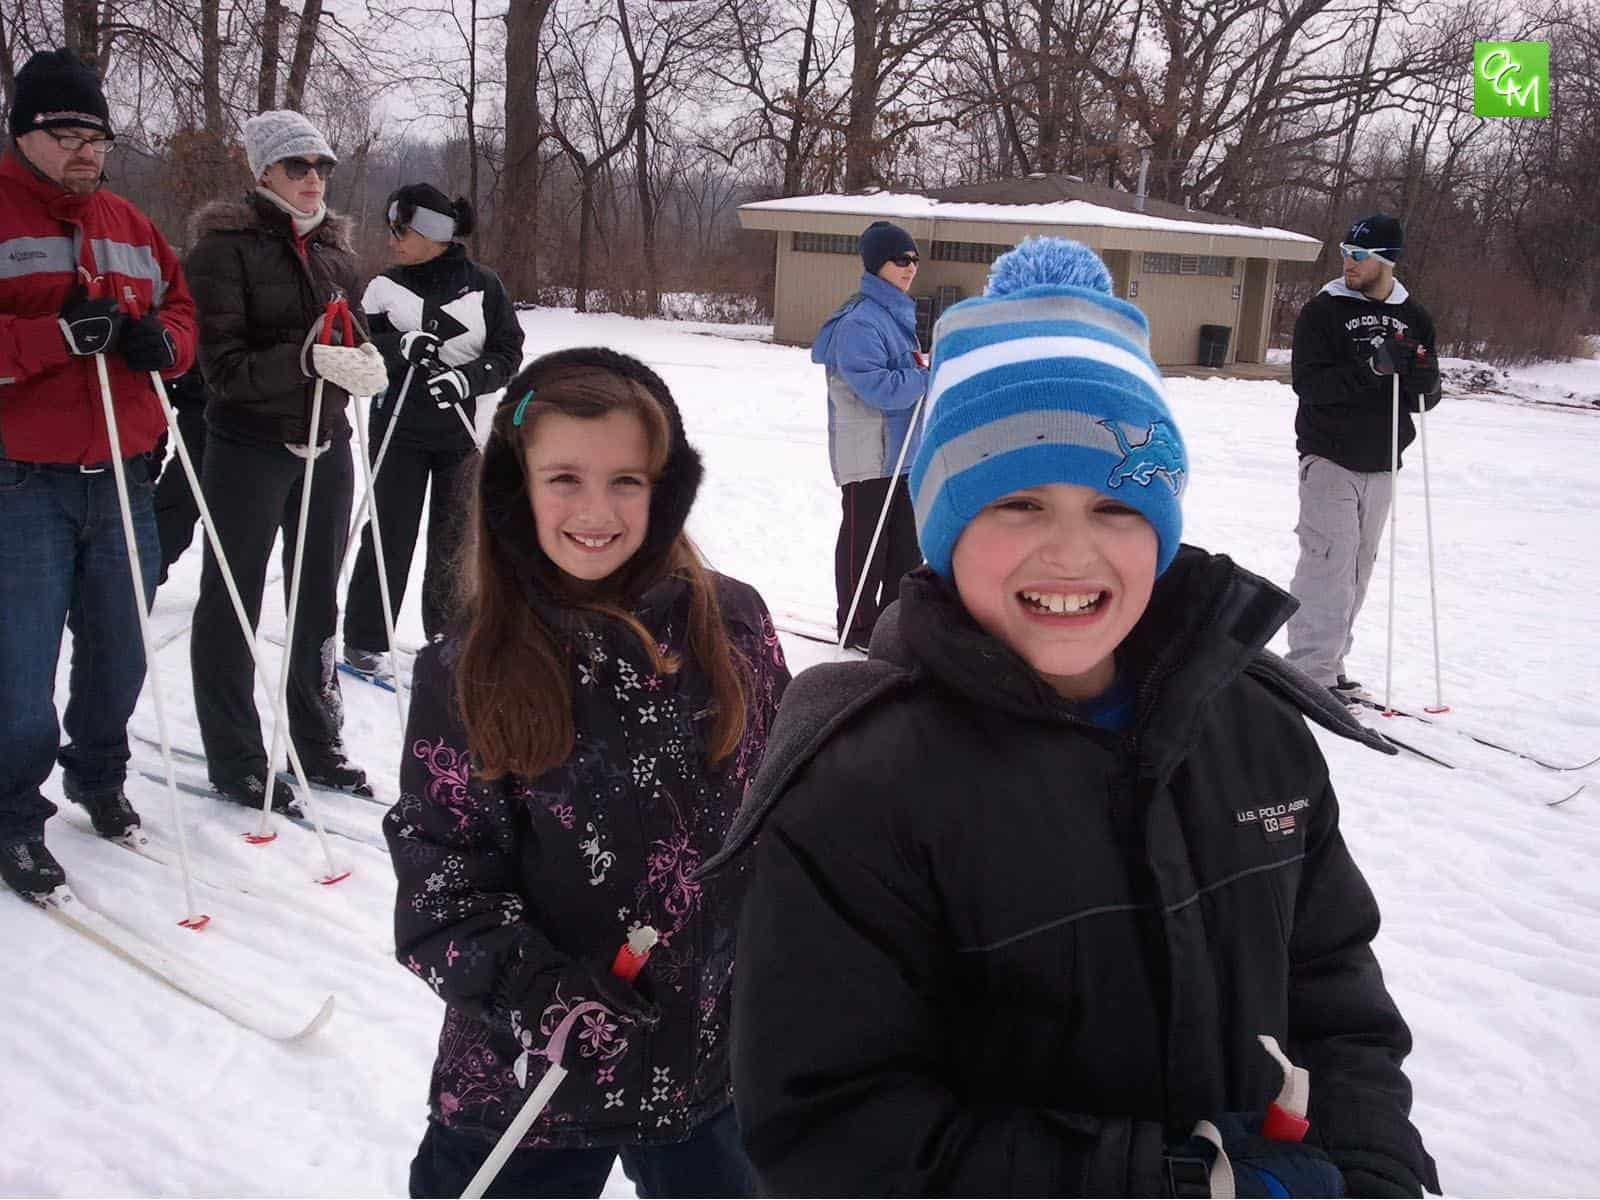 Two young children and family getting ready to cross country ski at one of the Oakland County parks.